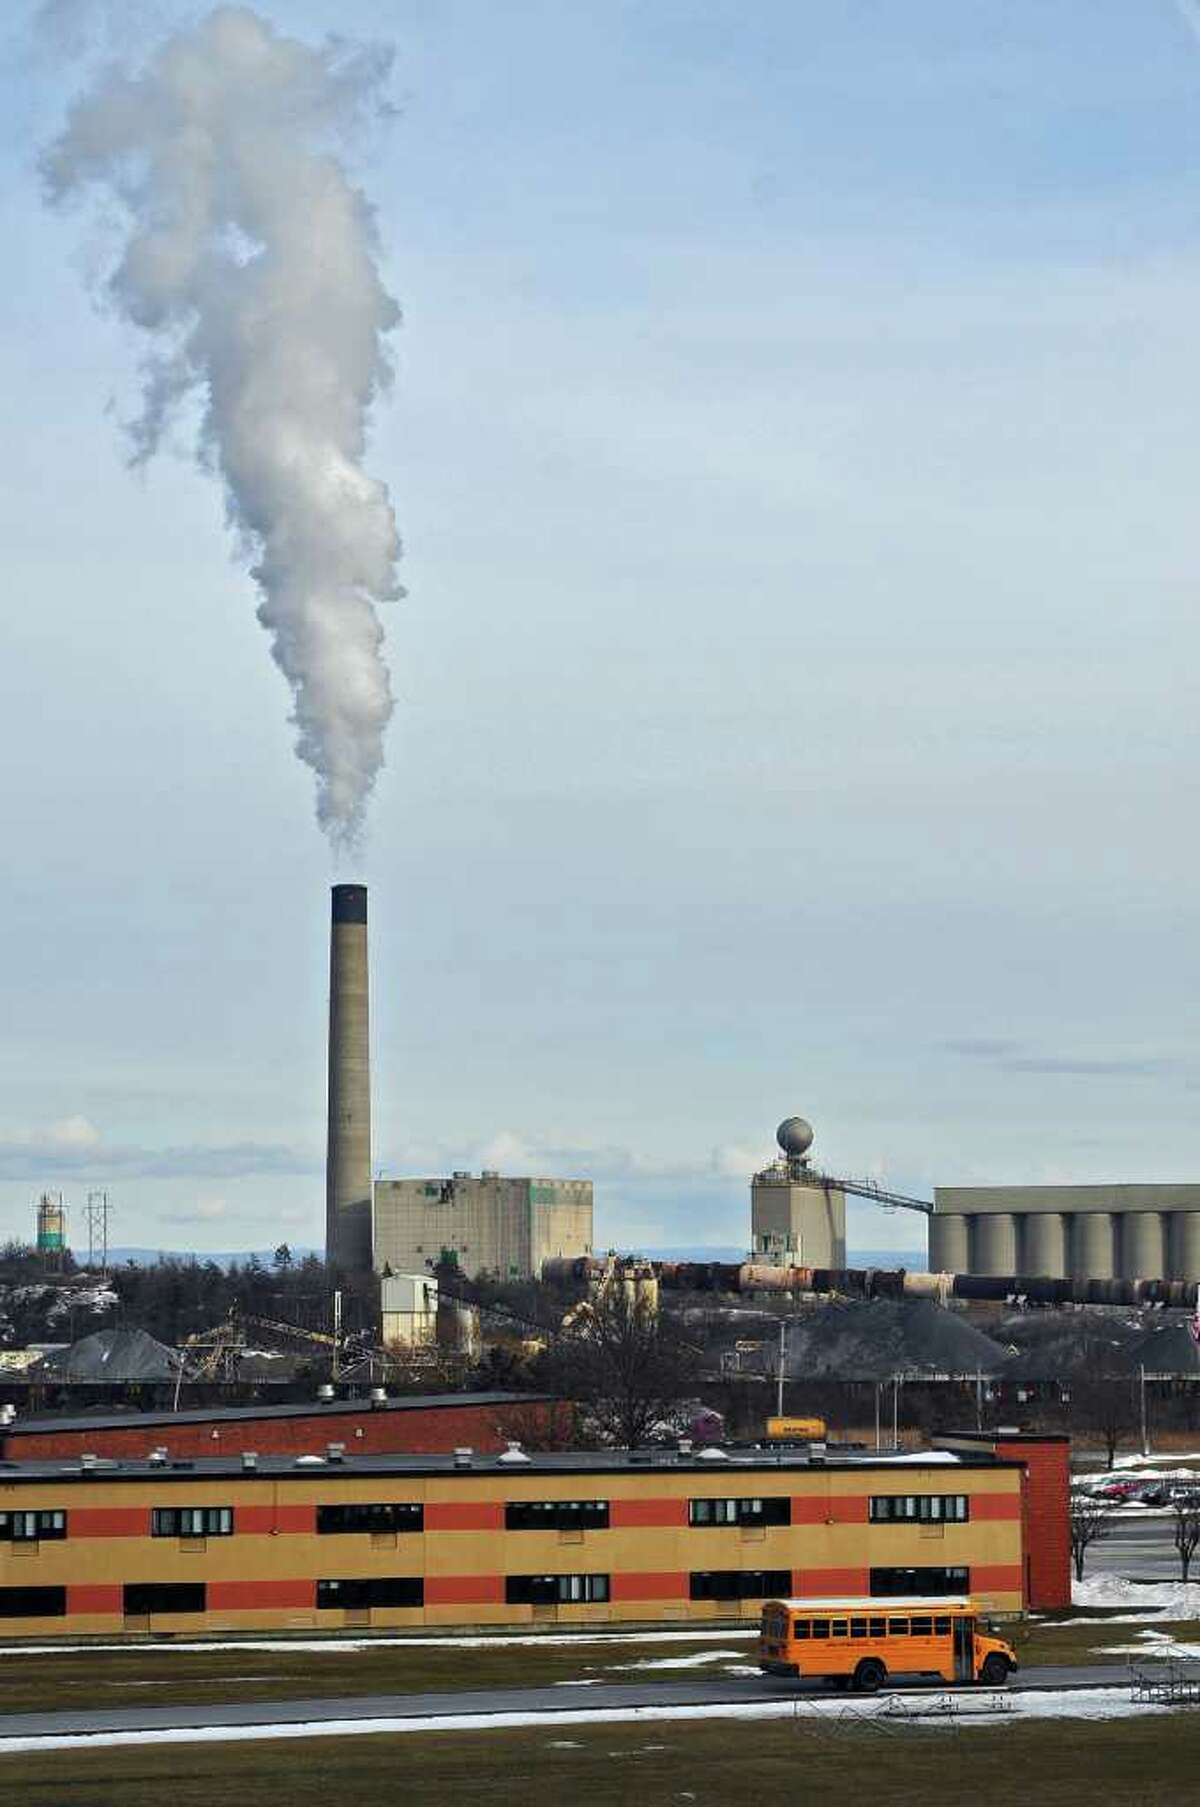 FILE - View of the Lafarge Cement Plant in Ravena, NY on Thursday January 6, 2011. The Ravena-Coeymans-Selkirk high school is in the foreground. ( Philip Kamrass / Times Union )